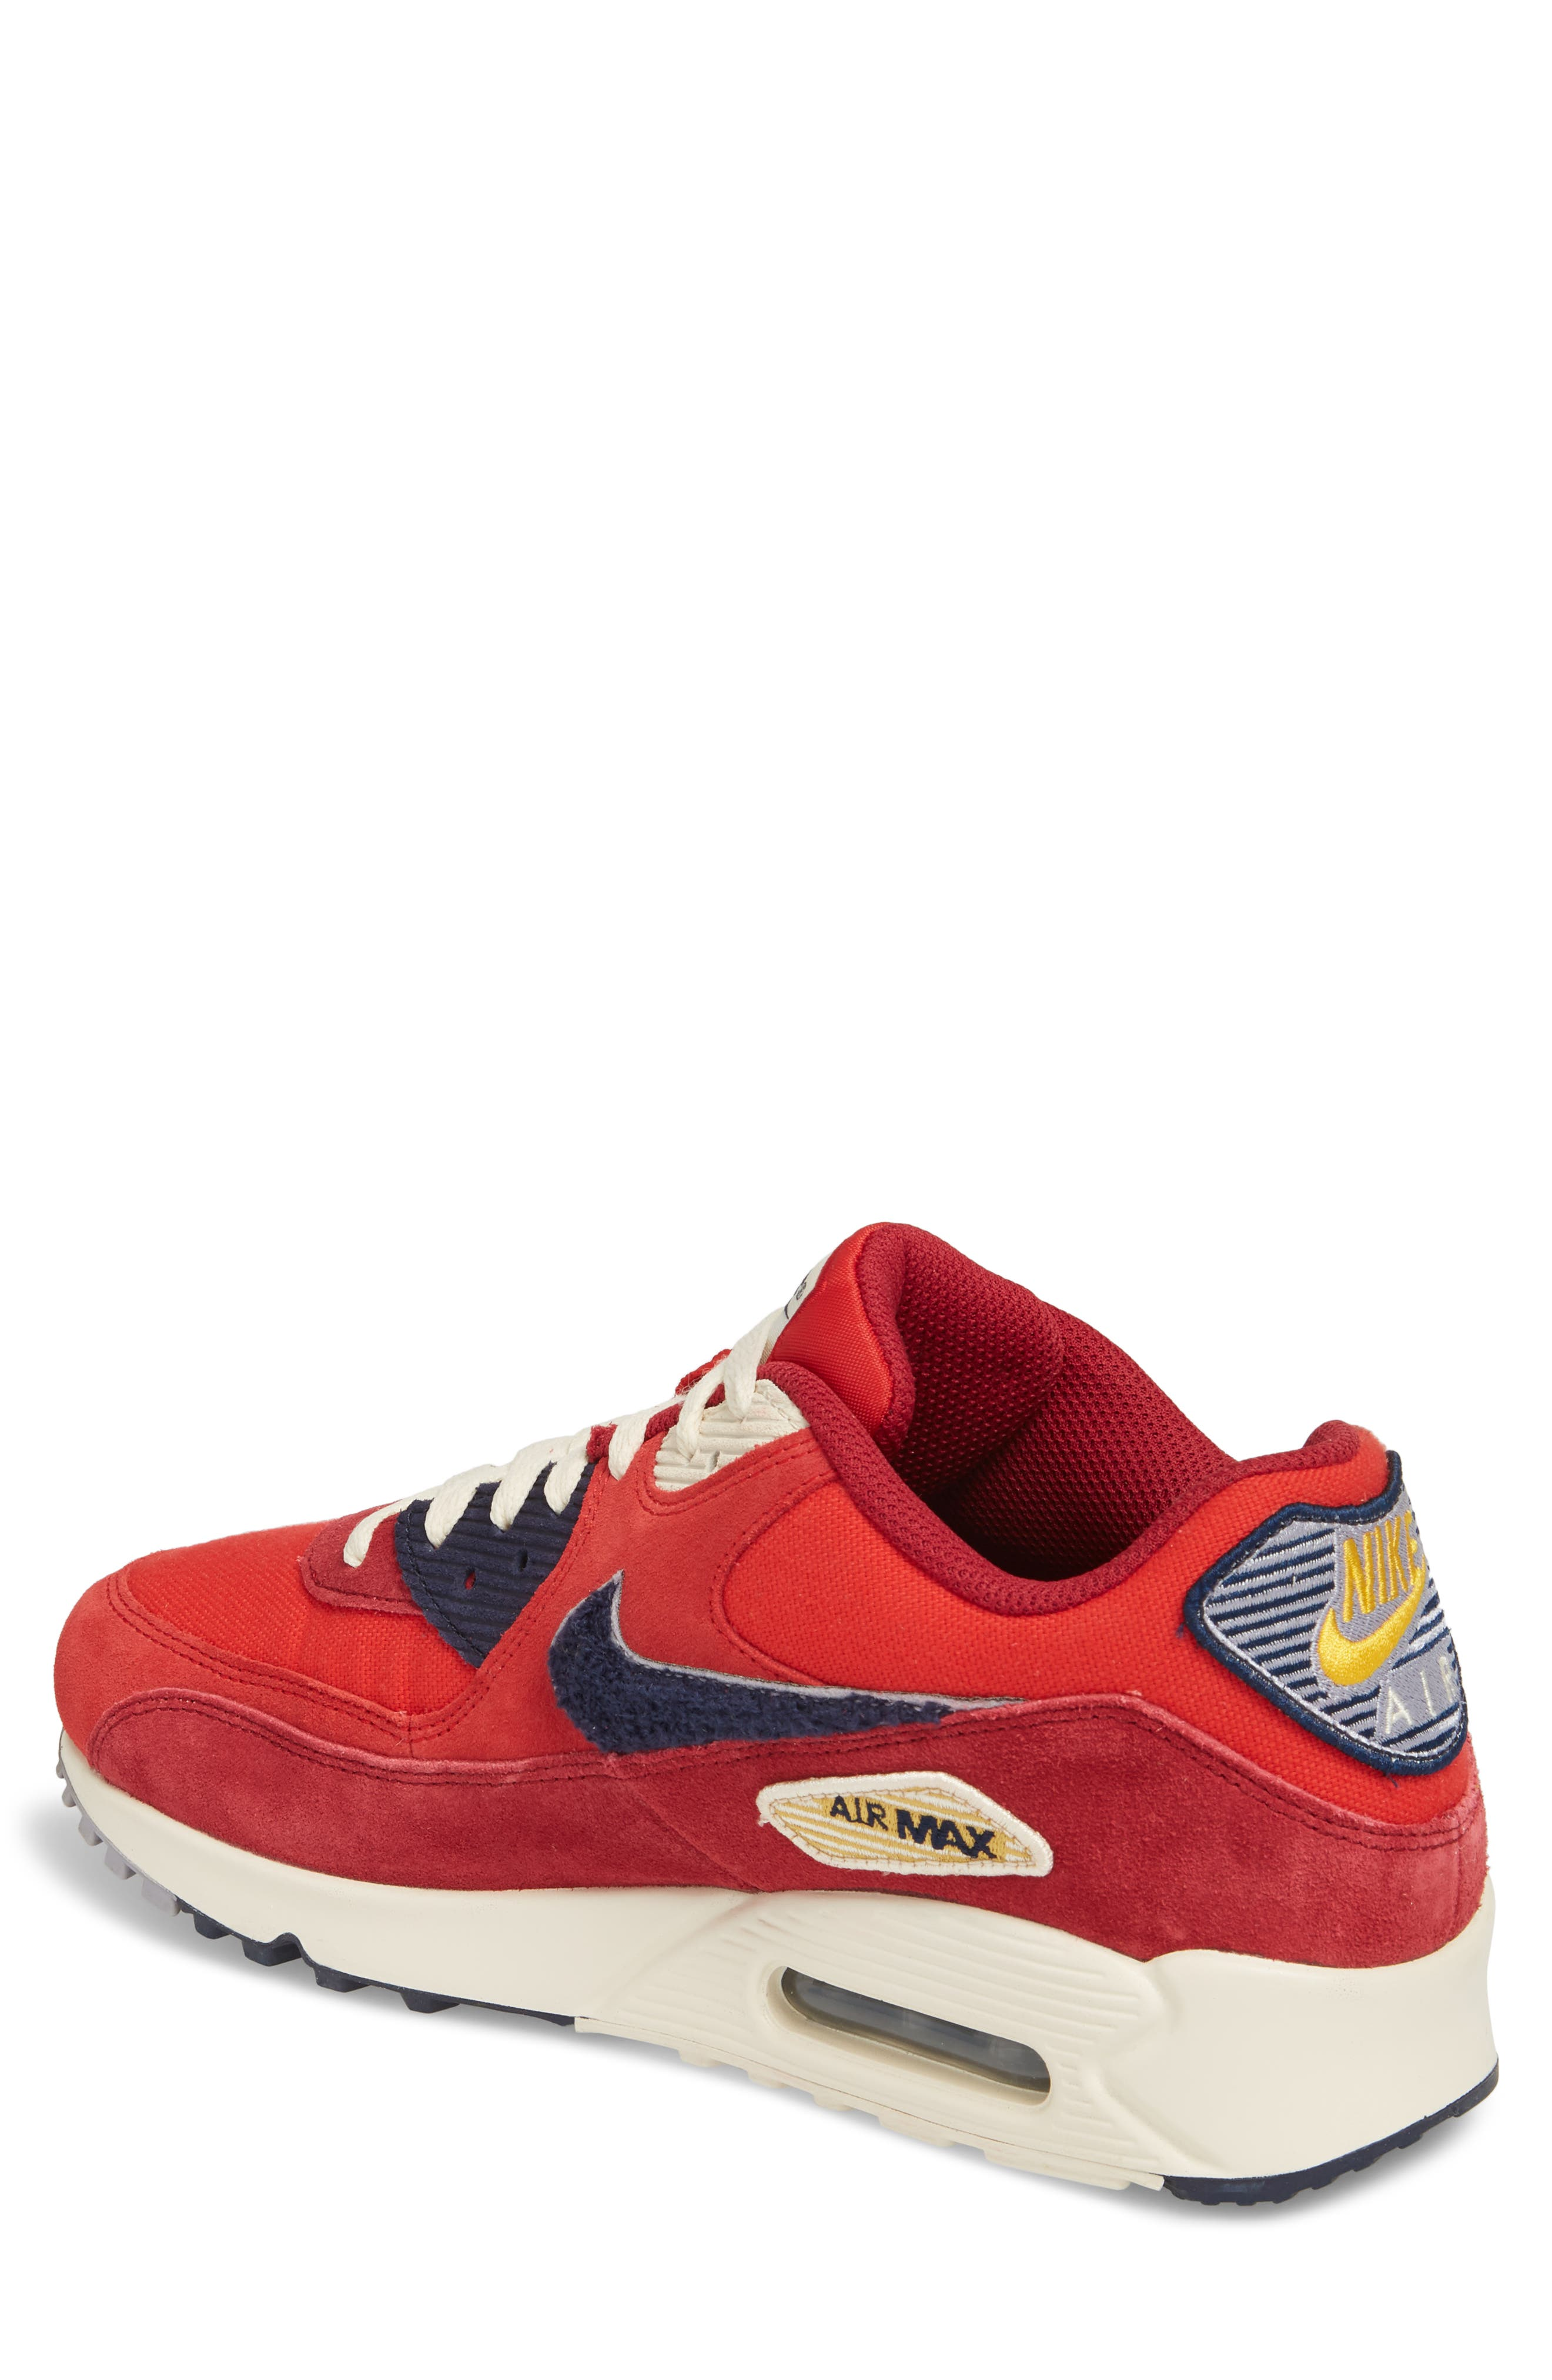 Air Max 90 Premium Sneaker,                             Alternate thumbnail 5, color,